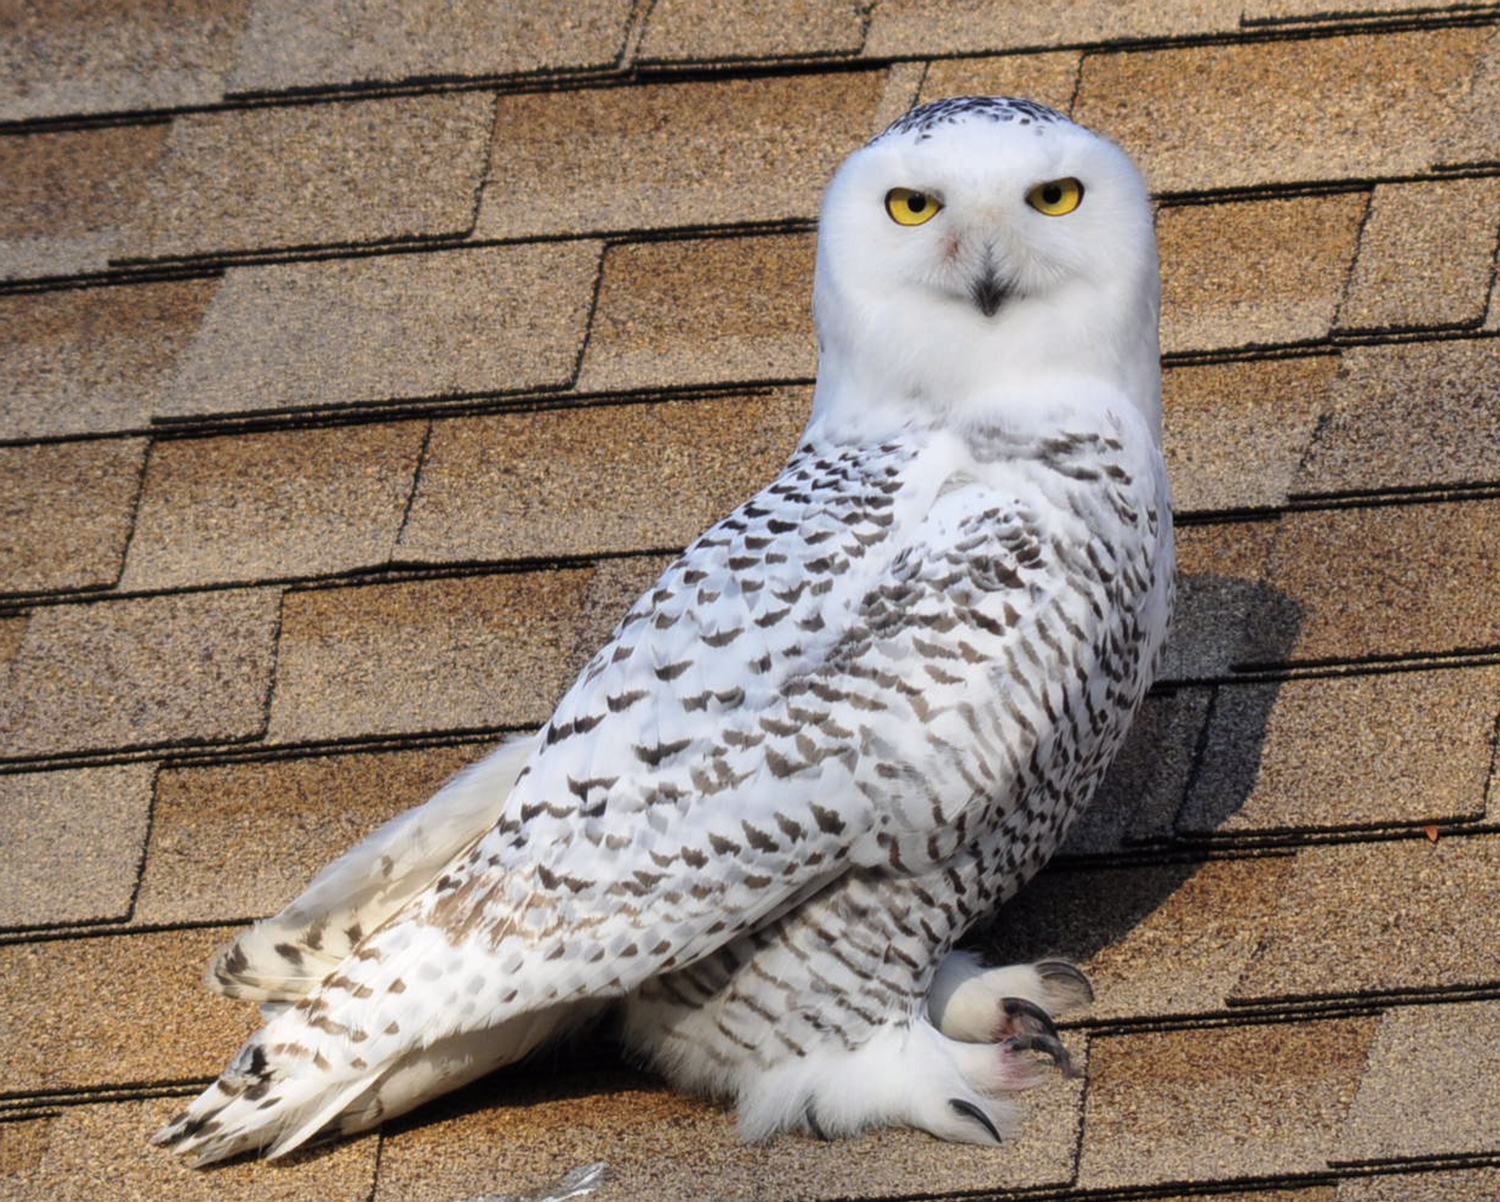 Snowy Owl photographed by Dave Hucker 12-4-2013 on Whitehorse Rd., Malvern PA.